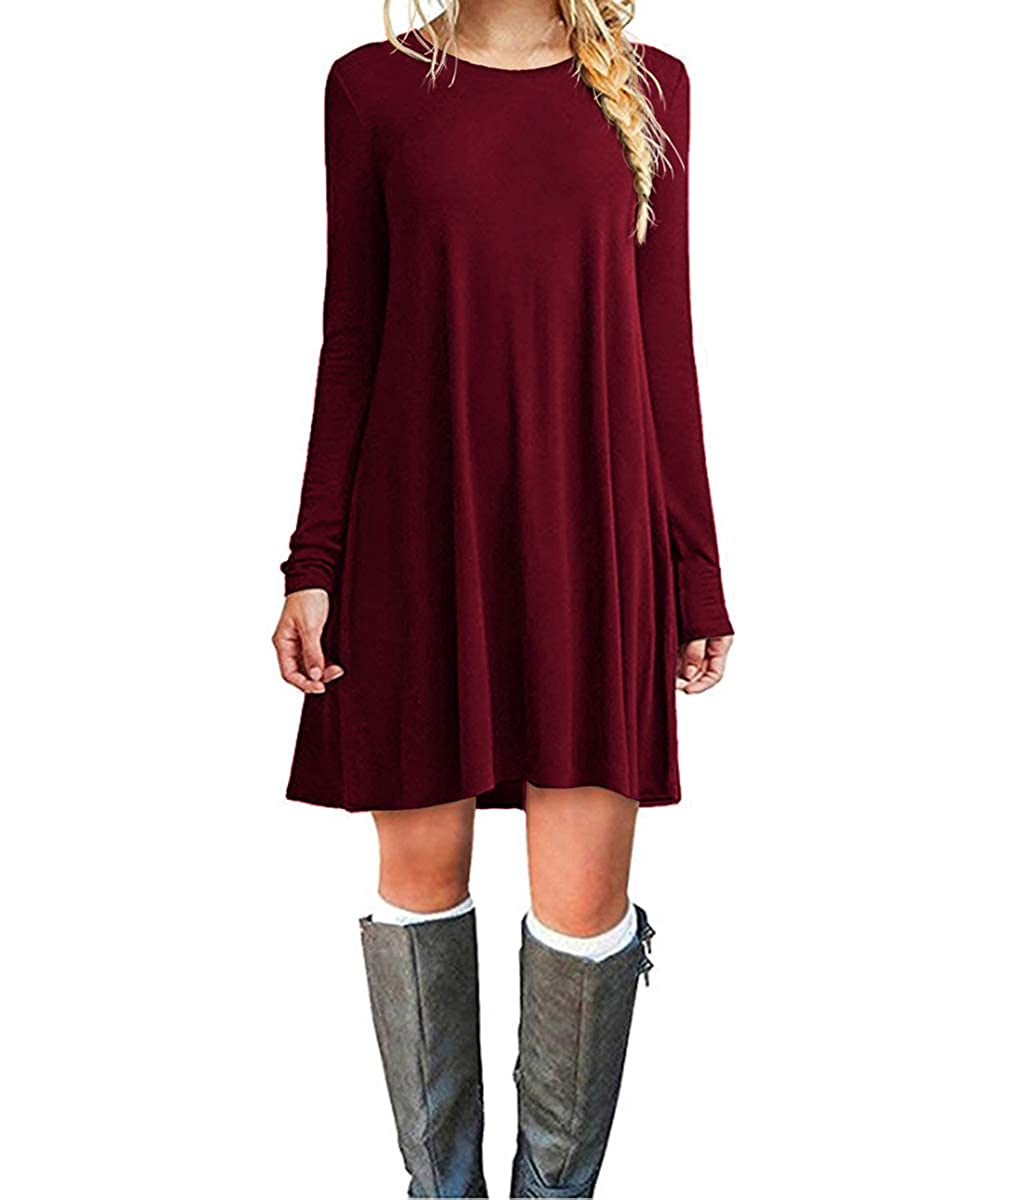 Cnokzol Women Long Sleeve Tunic Dress With Pockets Casual Loose